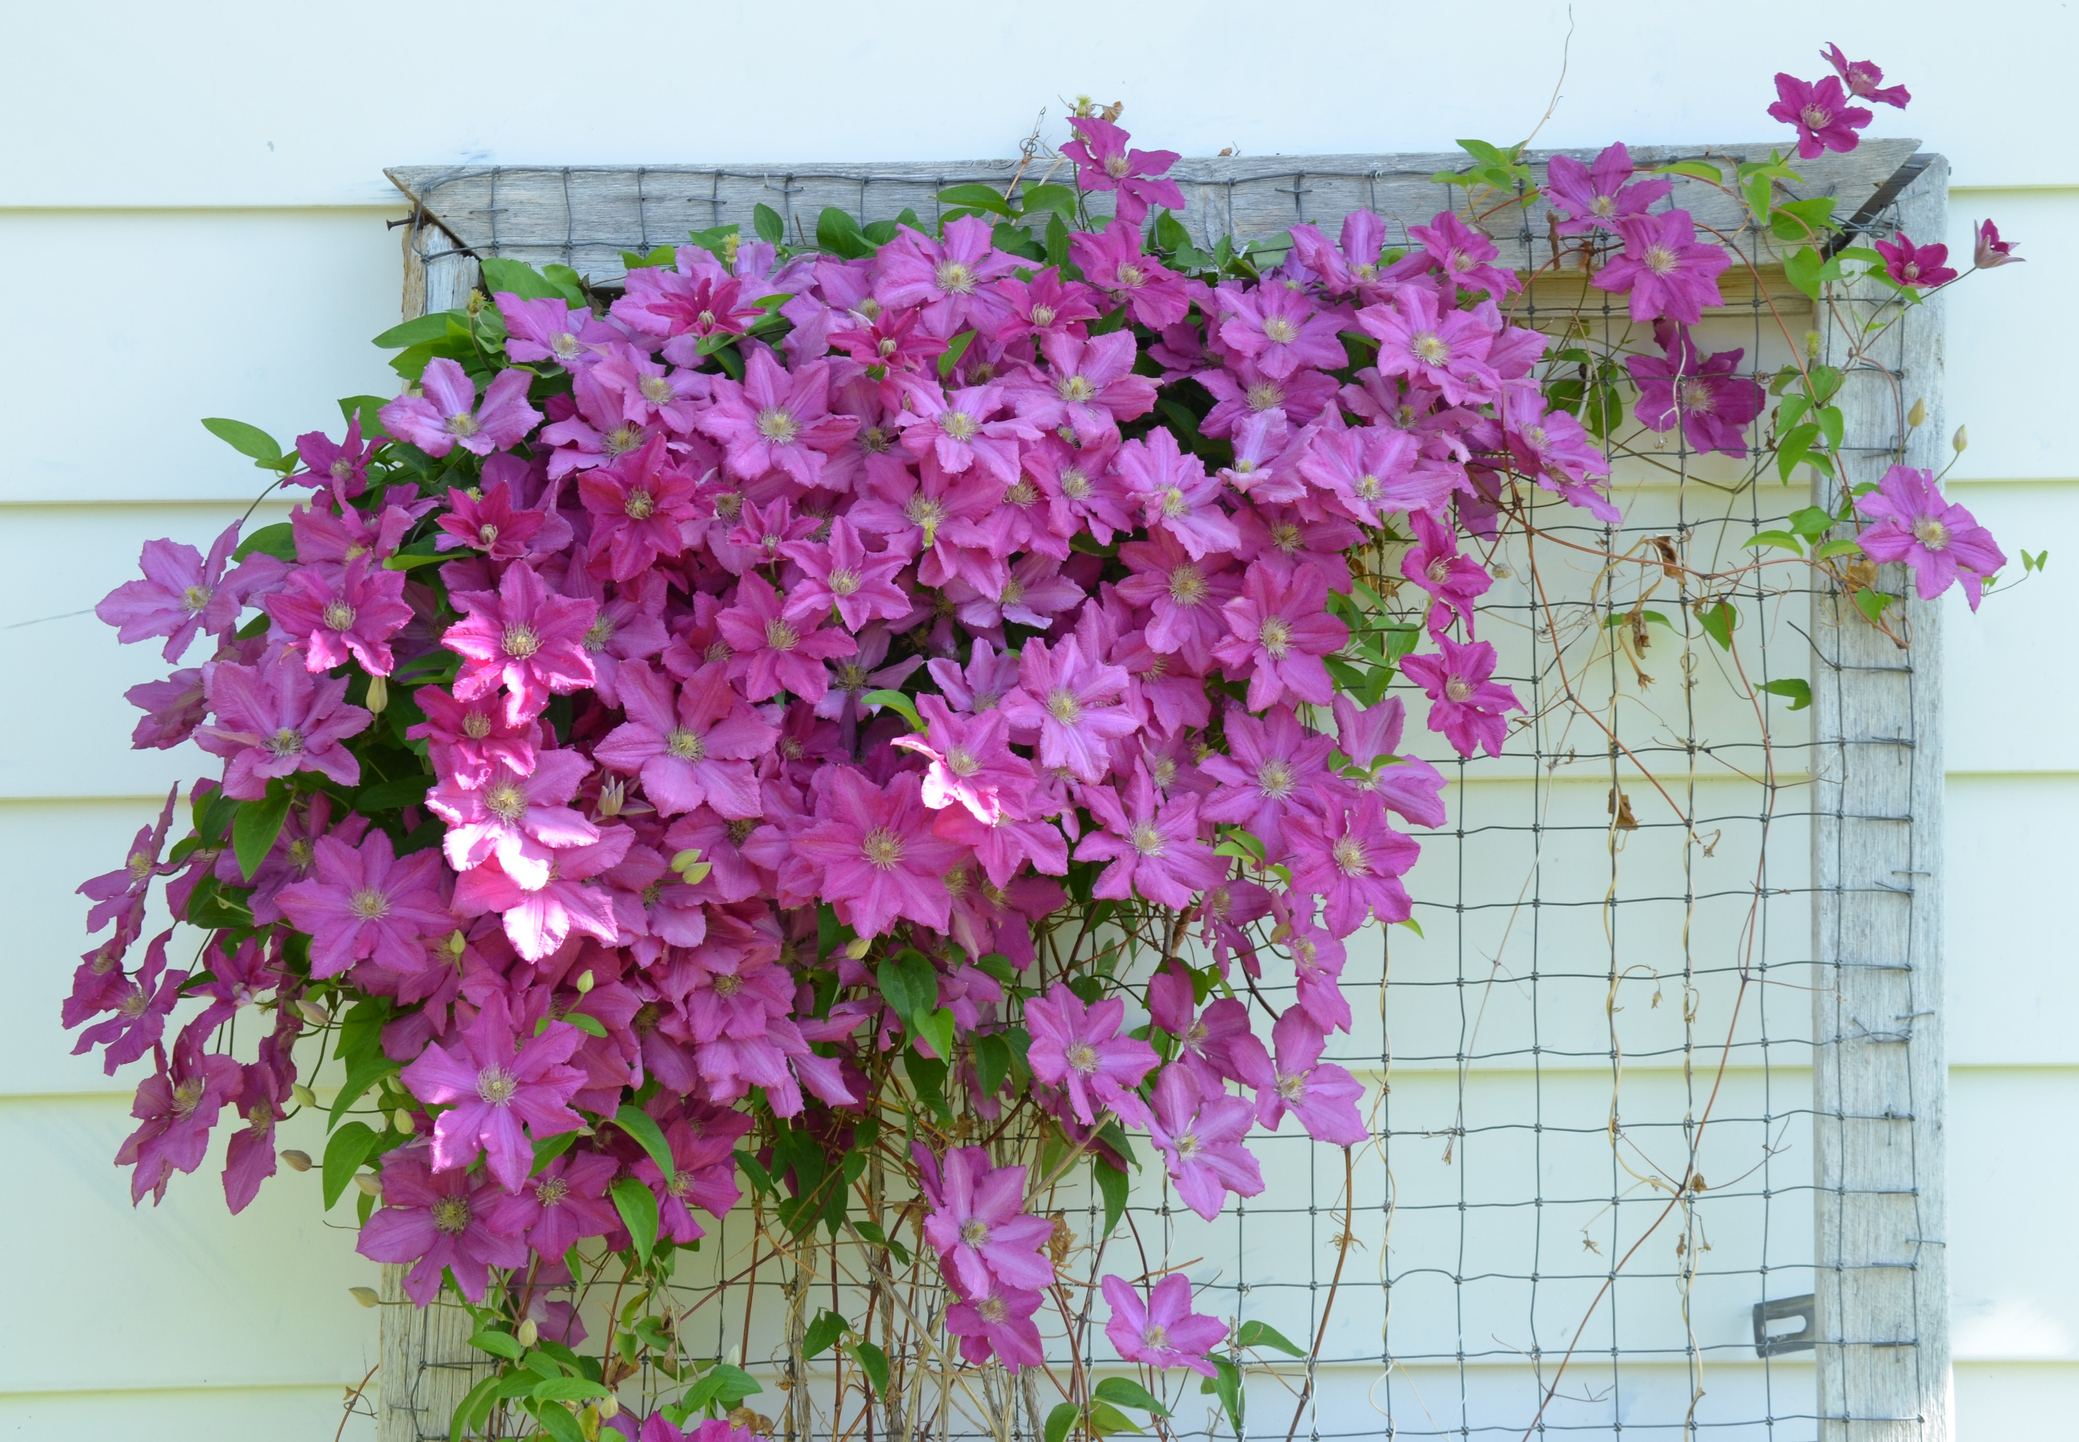 A wire cage works as a trellis for clematis. It' doesn't have to be a decorative trellis, but can be very simple so long as the clematis can climb.